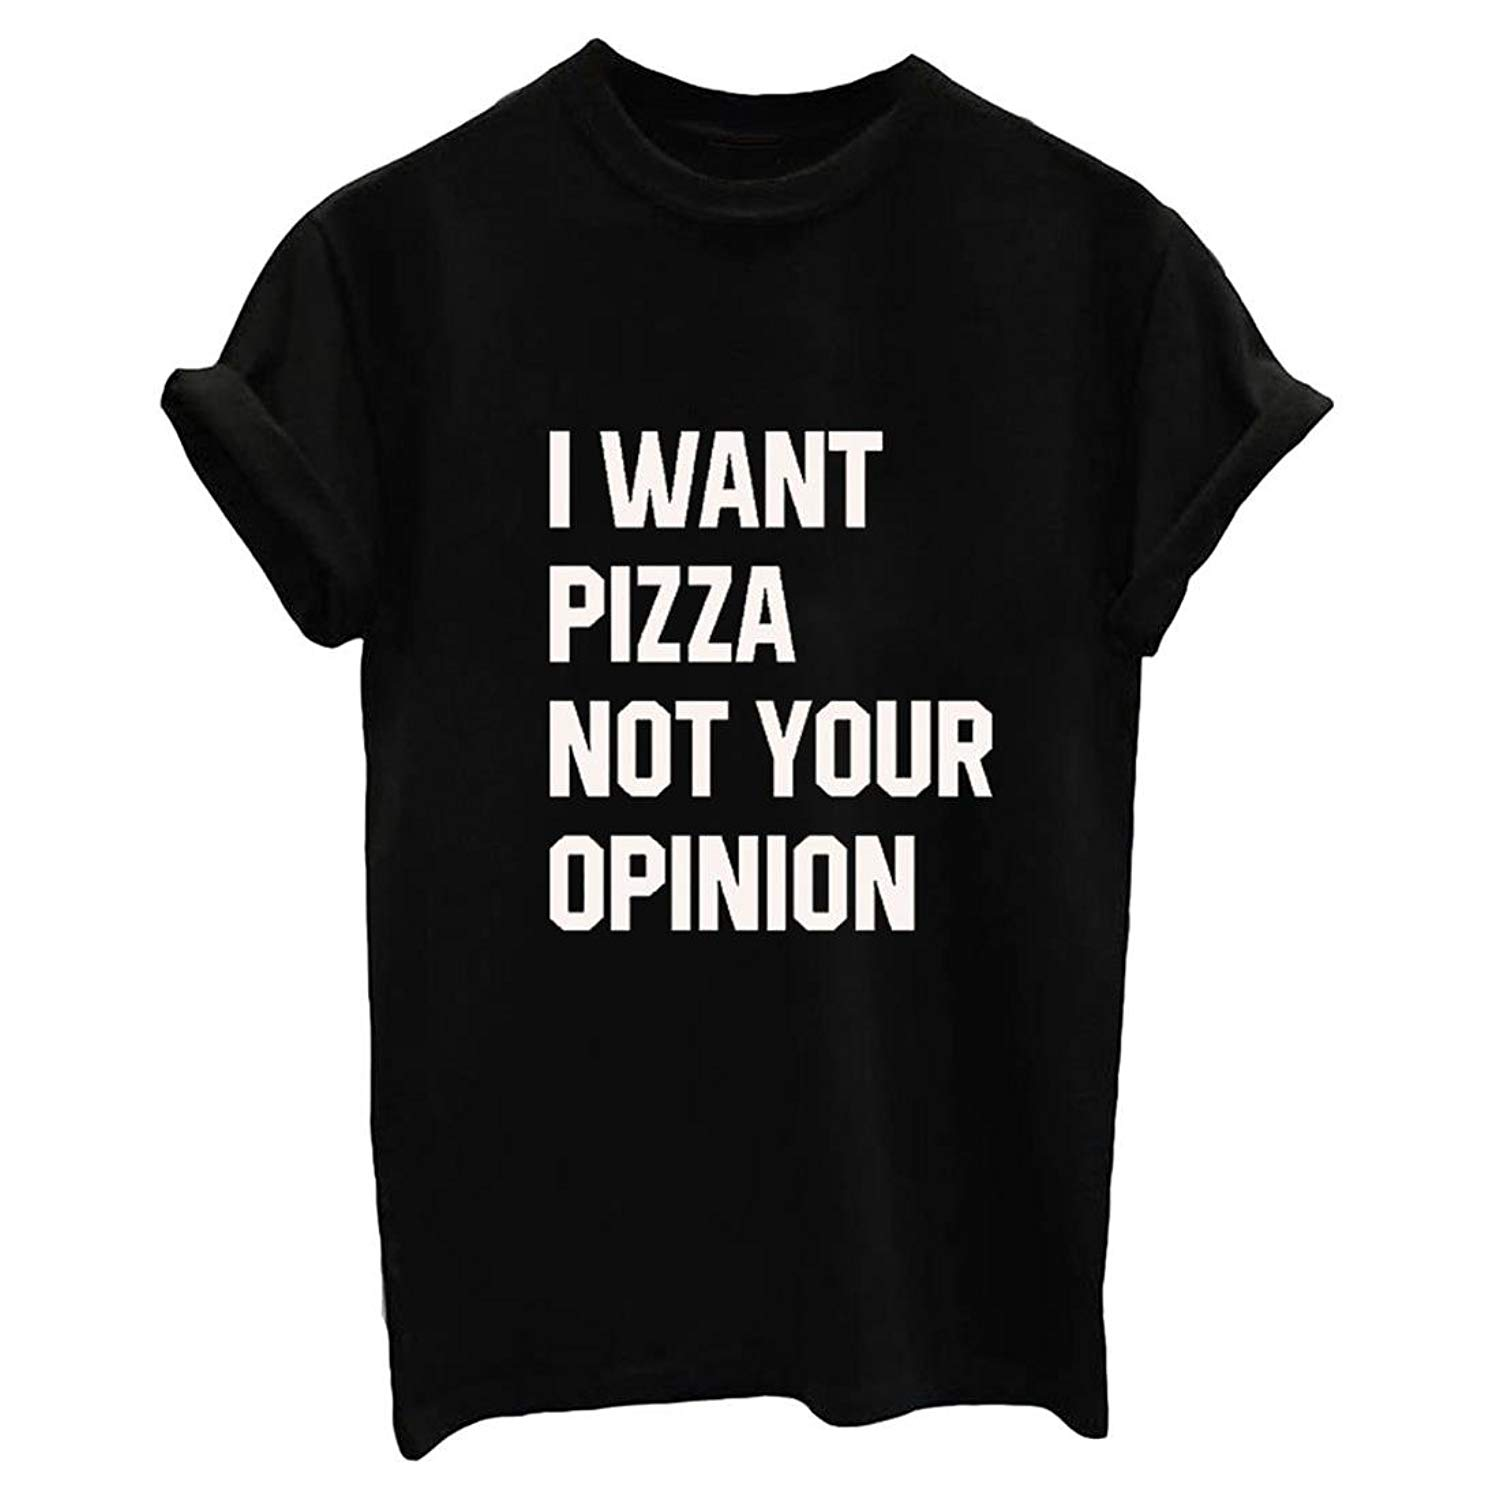 Myth Cute Graphic Funny Tops N Girl S Shirts